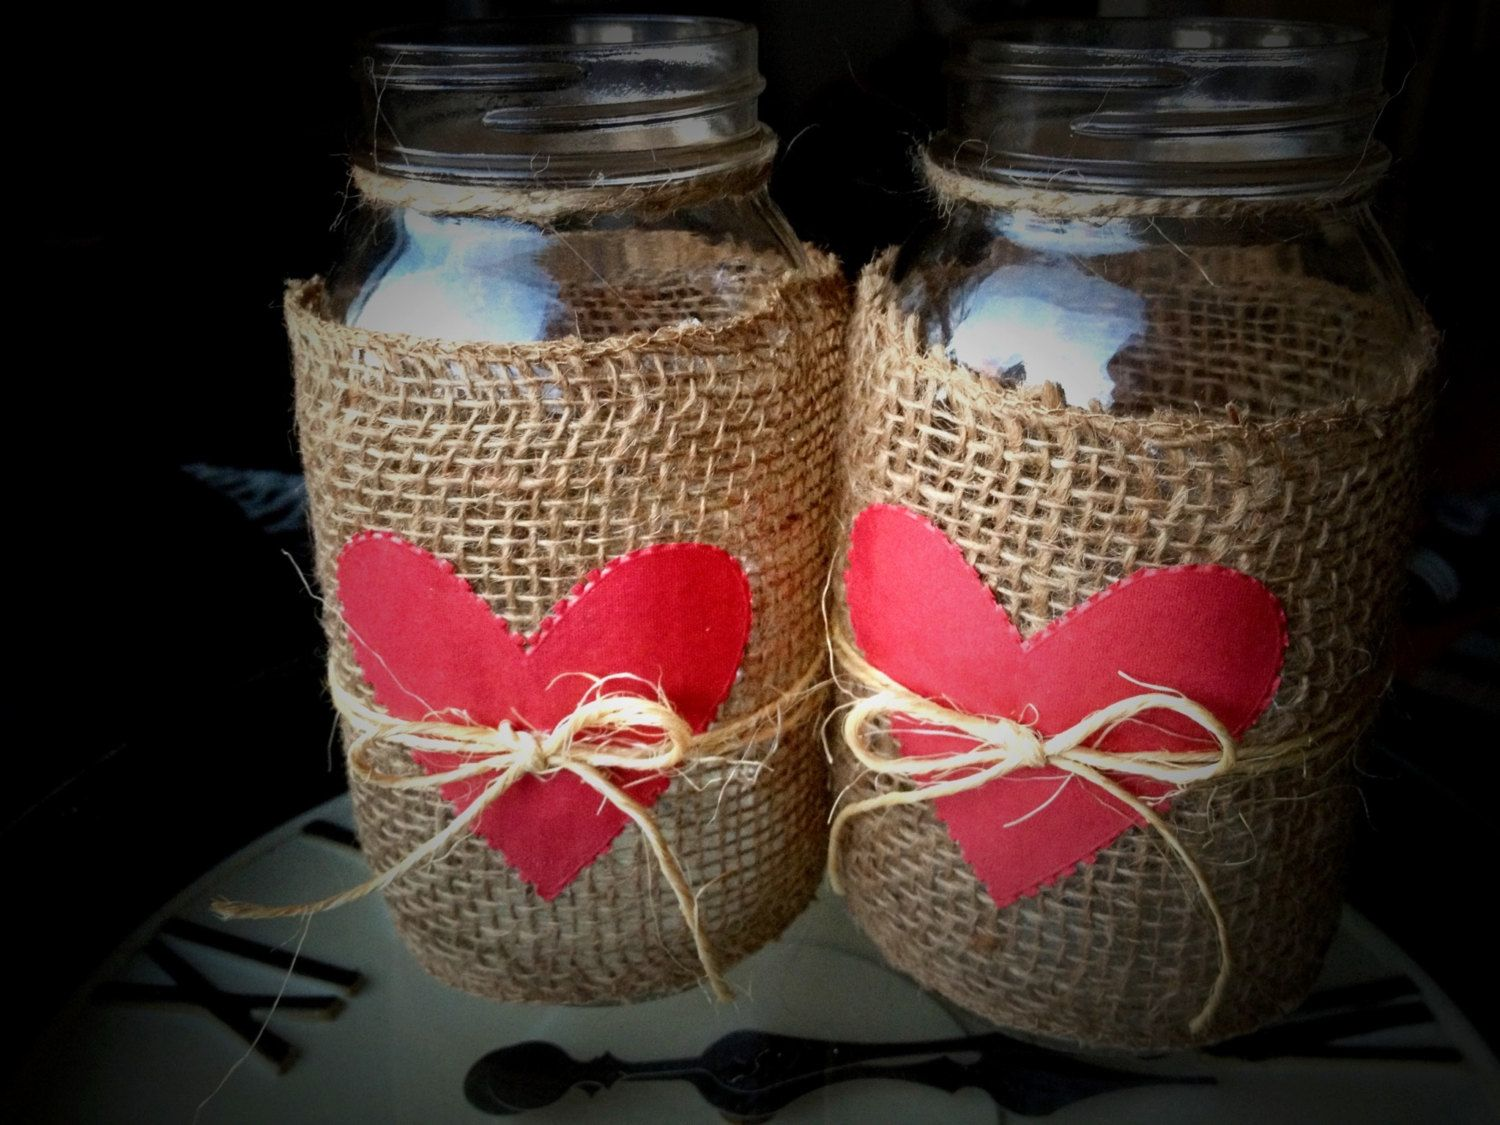 Decorating Mason Jars Valentine Mason Jars Heart Mason Jars Valentines Day Decor